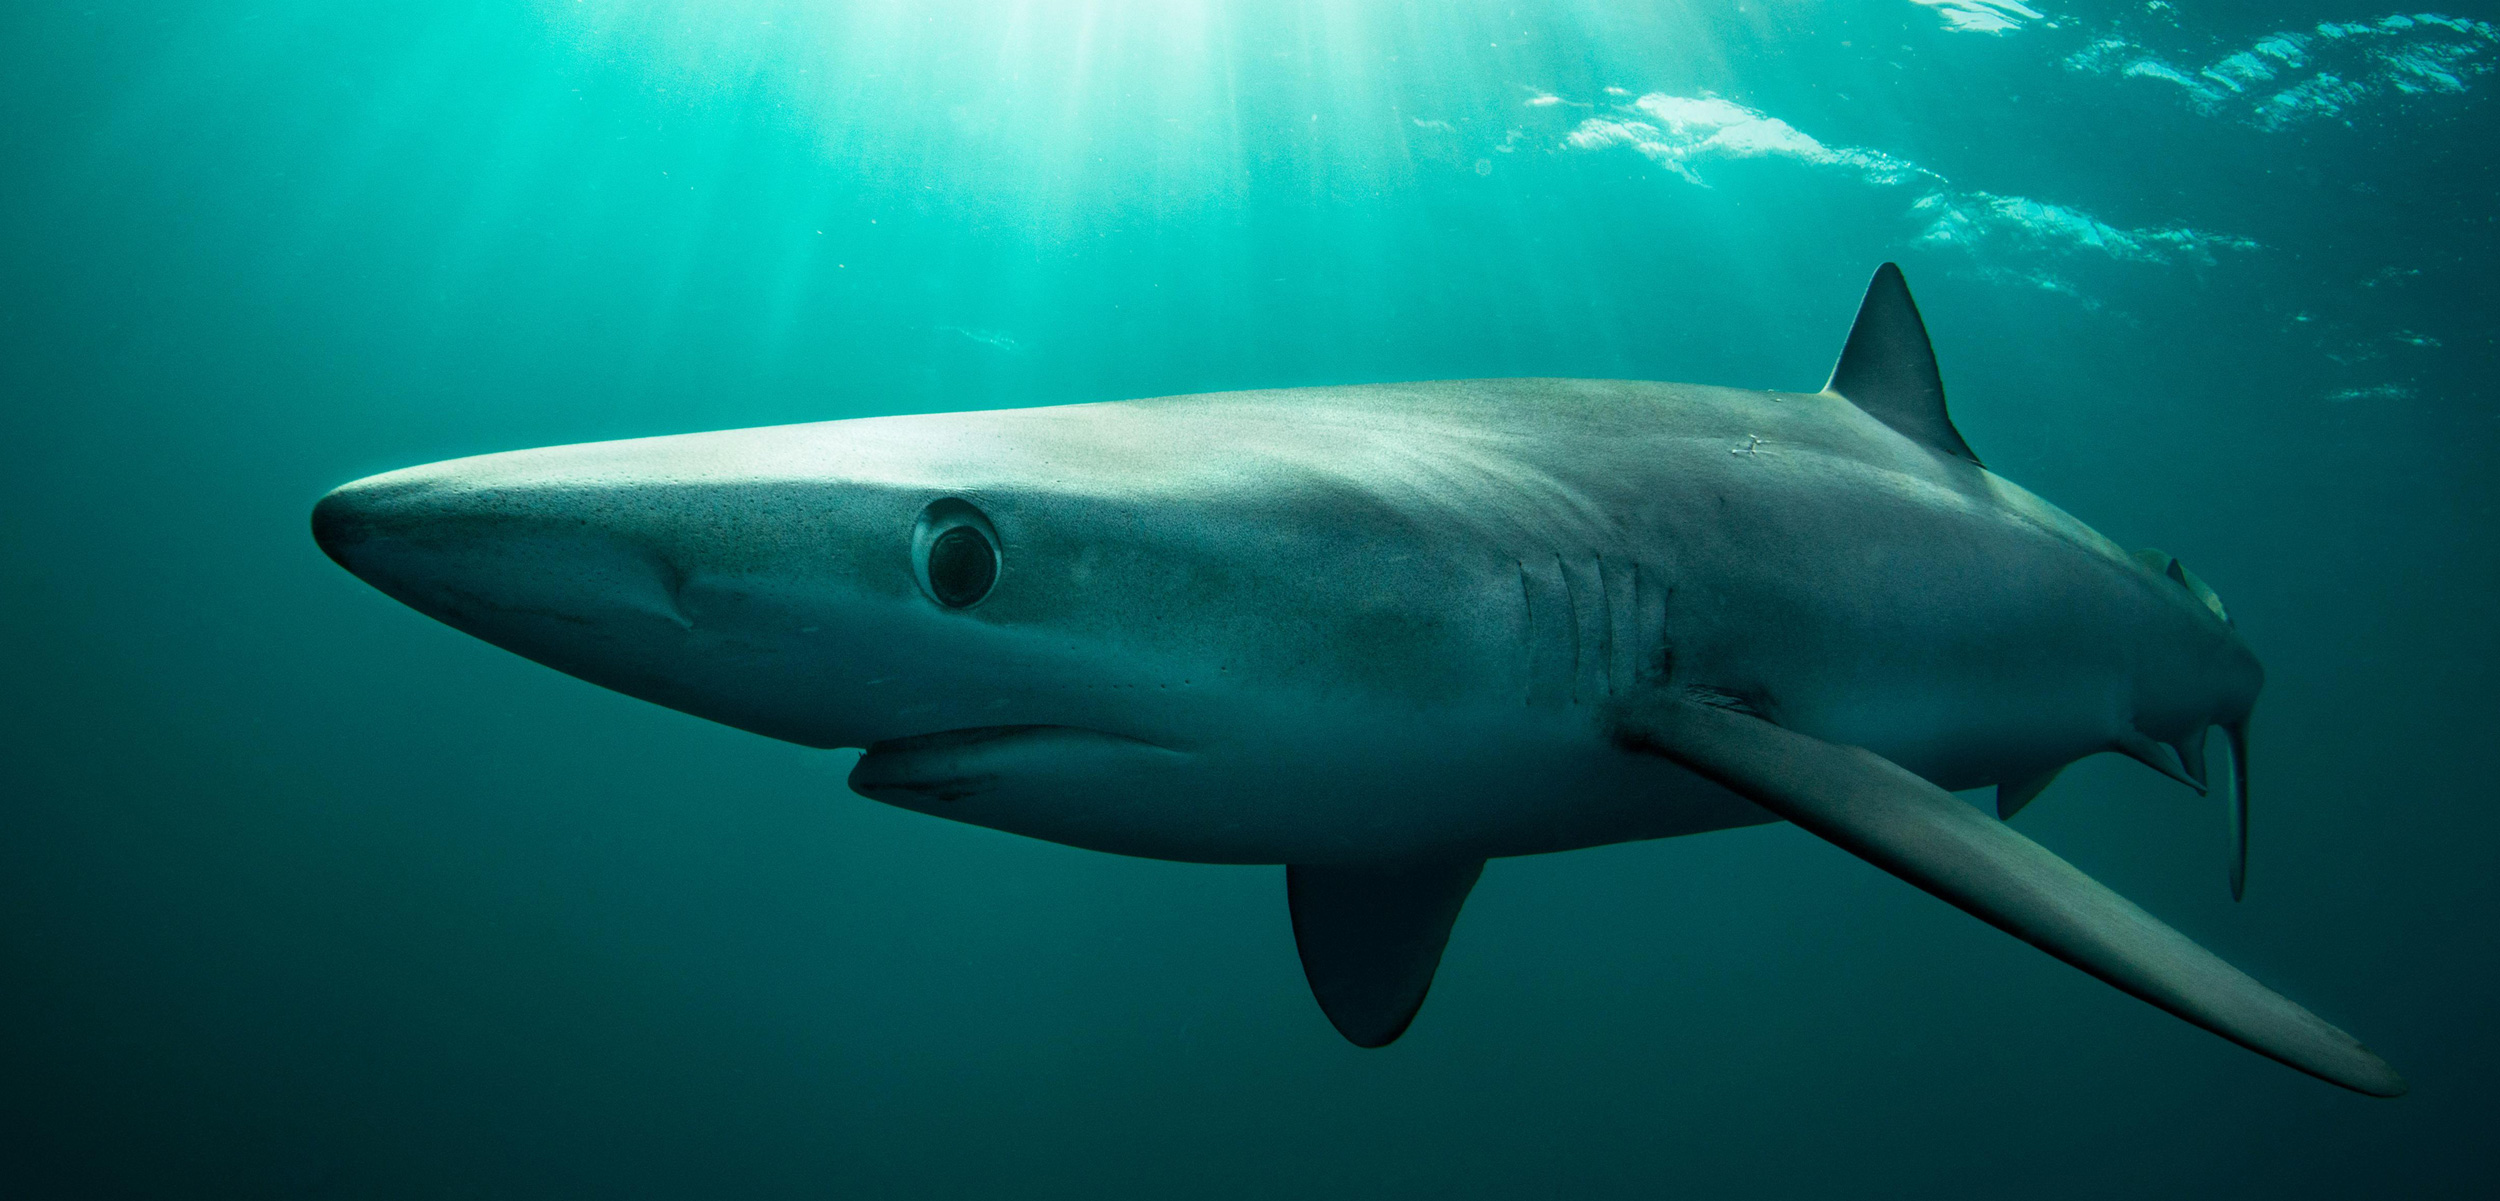 Rare Intersex Shark the First of Its Kind Hakai Magazine